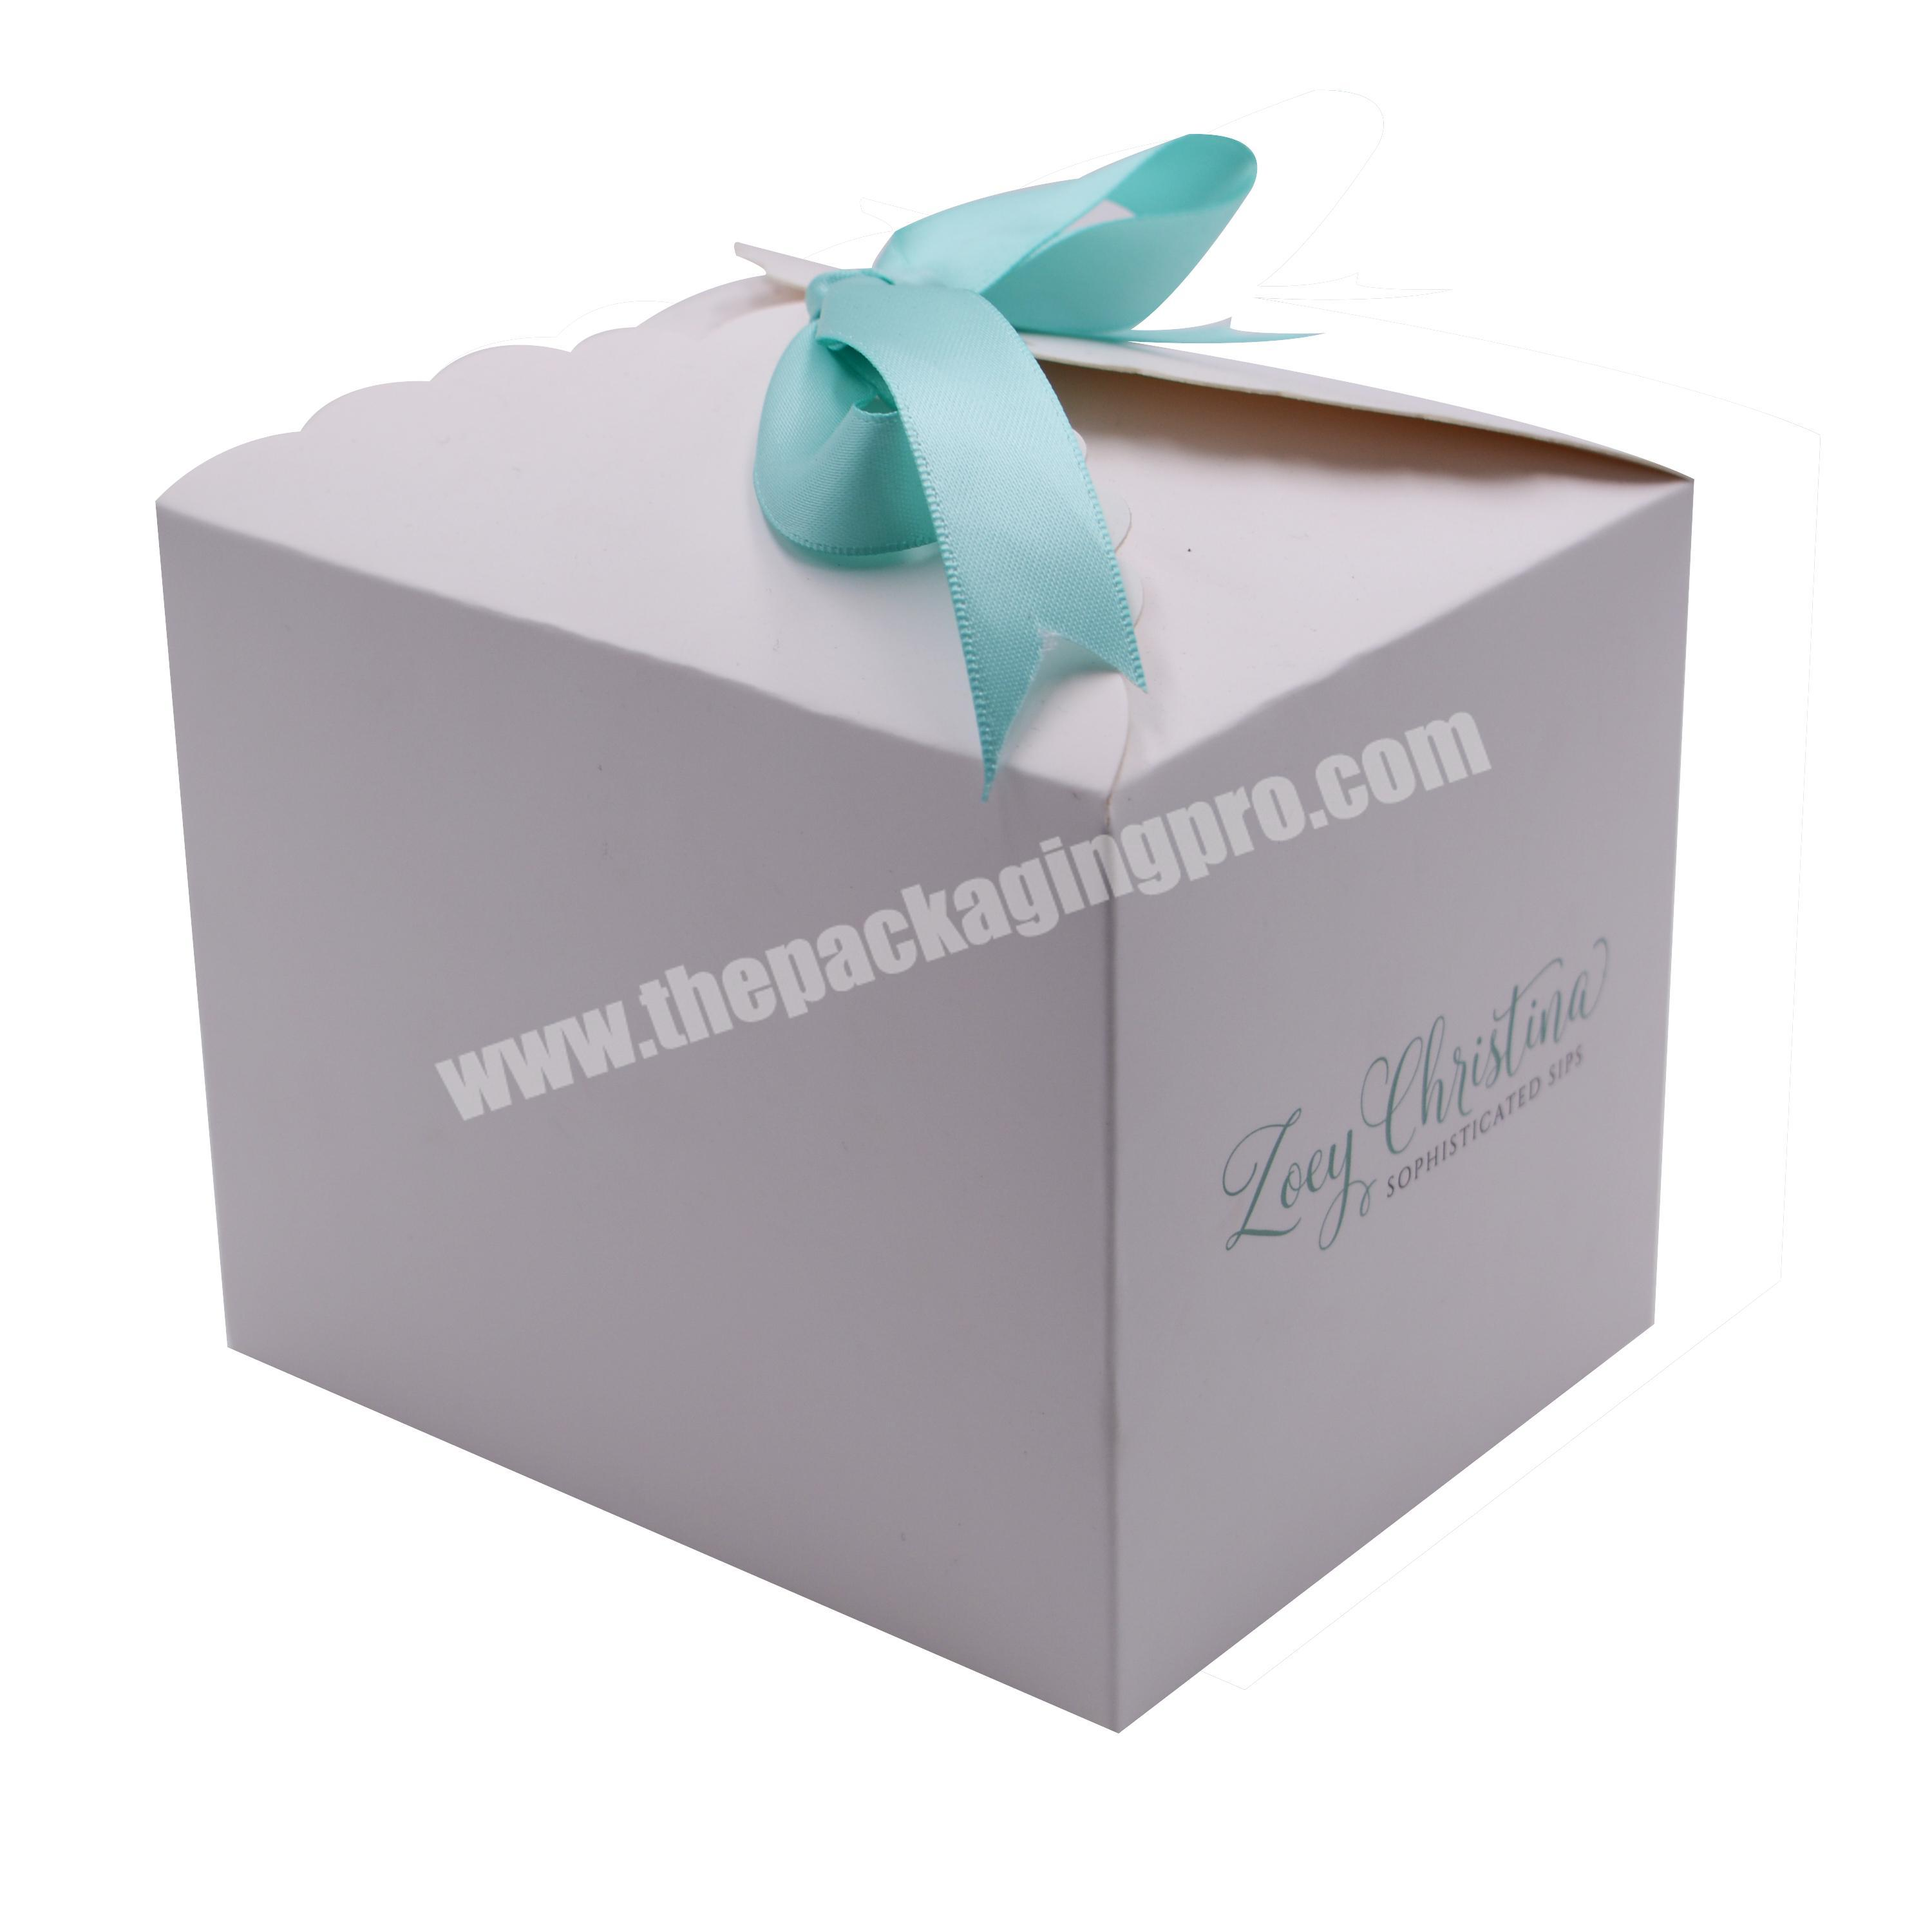 Professional Custom Card Box Cute Bow Packaging For The Cake Box, Chocolate, Coffee Beans,Gift Box For Snacks Beauty Products